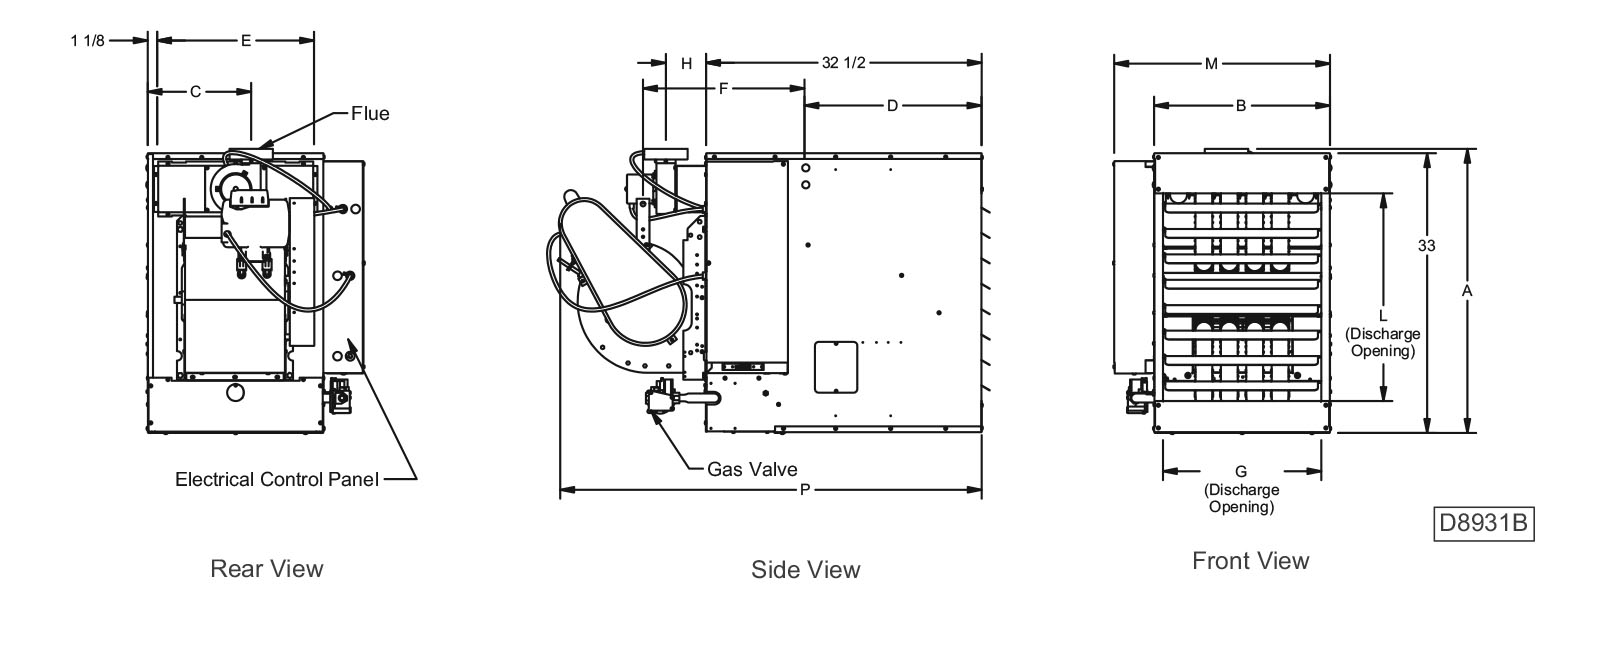 BTC Series Tubular Blower Unit Heater Performance and Dimensional Data Drawings